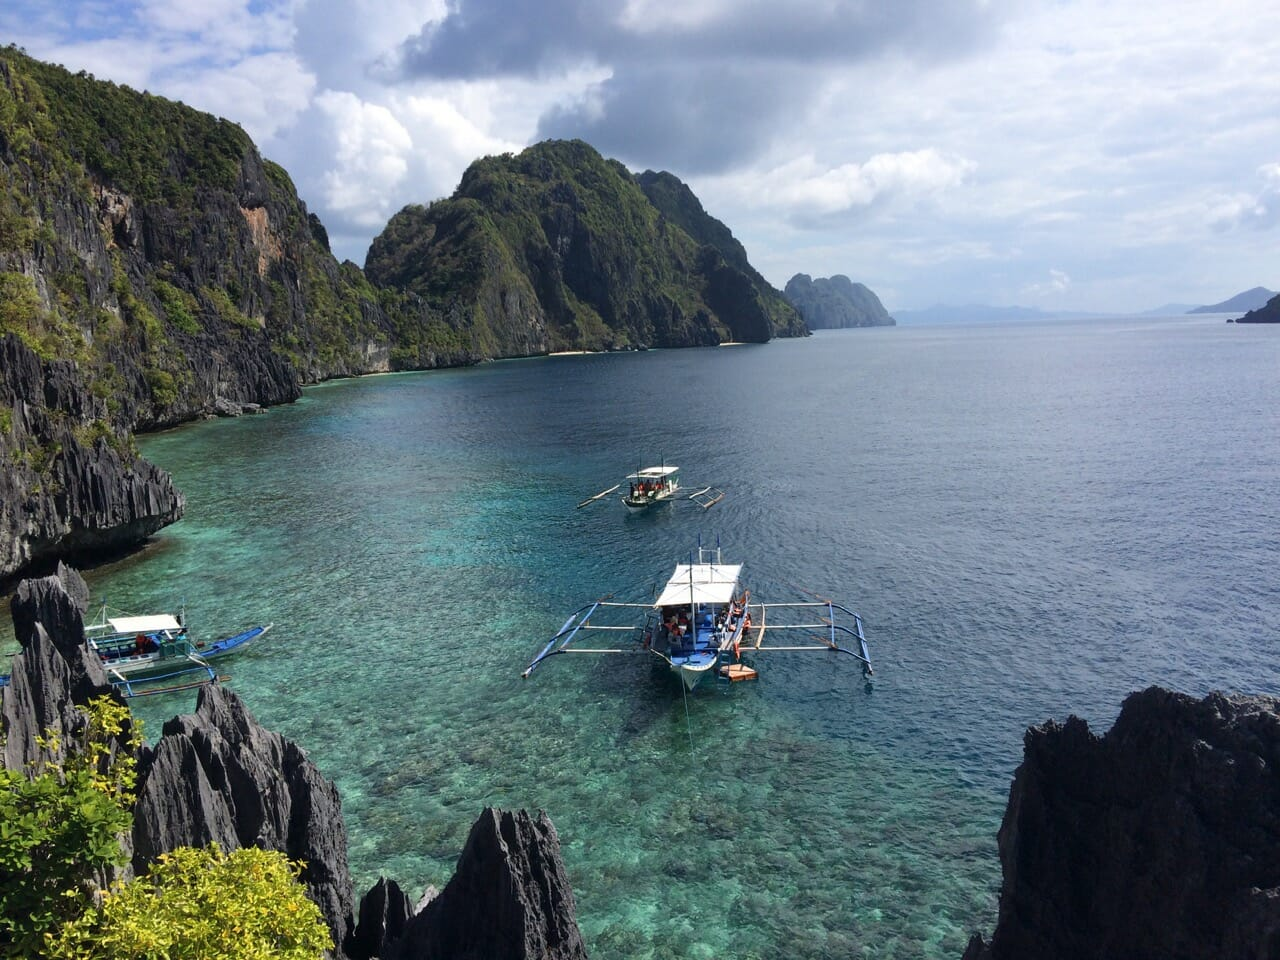 Matinloc Island, El Nido: one of the most beautiful places in the world